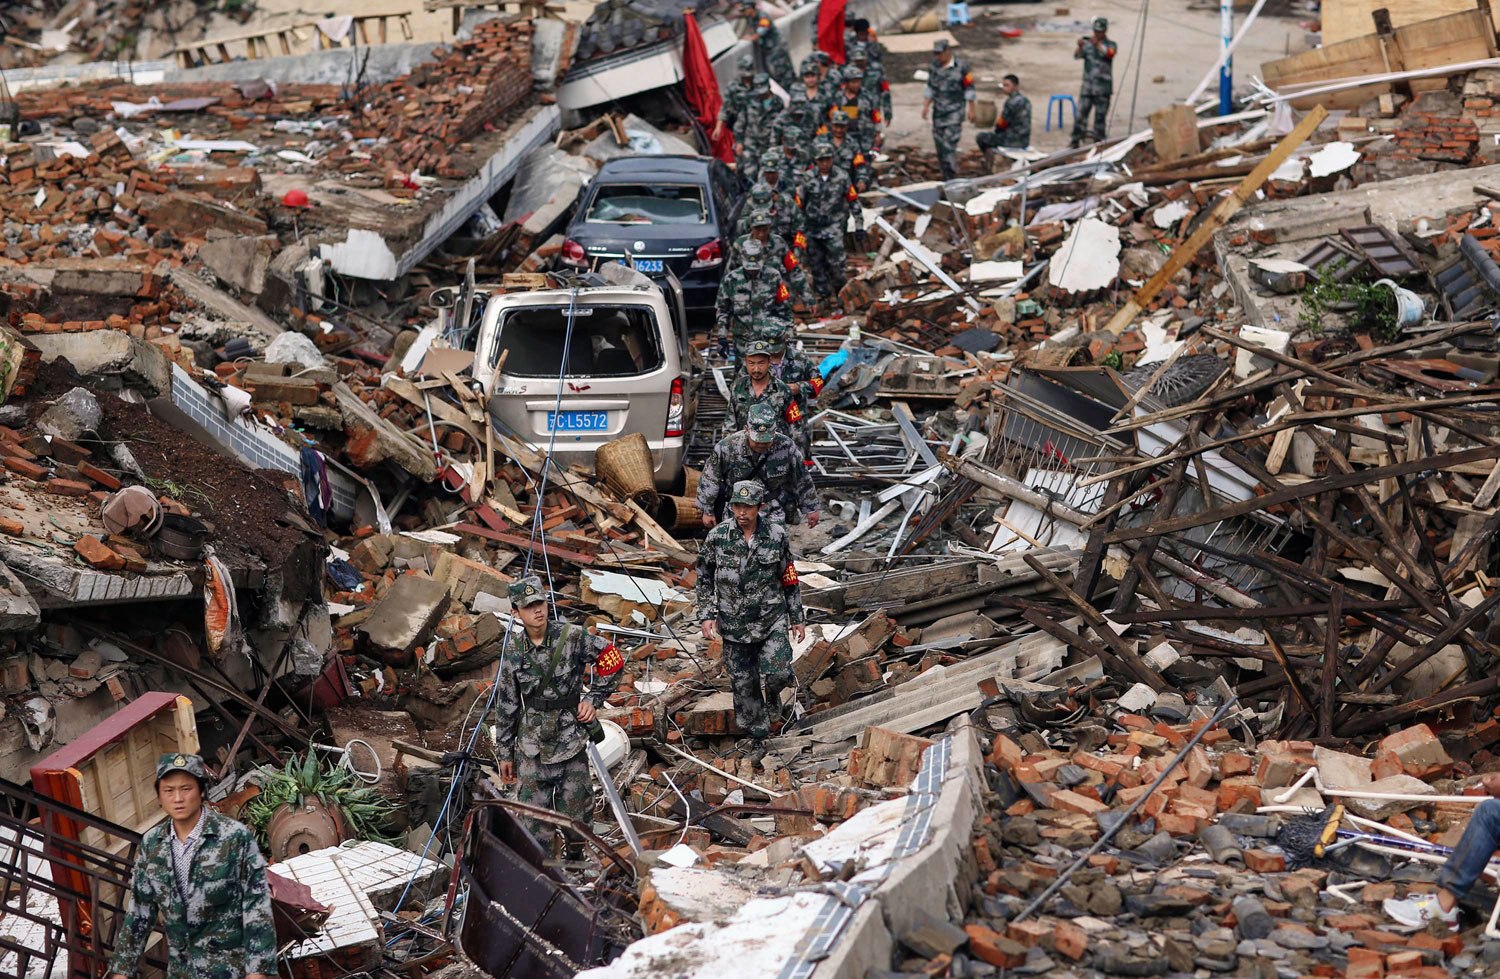 Rescuers search for survivors as they walk among debris of collapsed buildings after an earthquake hit Longtoushan township of Ludian county, Yunnan provinceon Aug. 4, 2014.